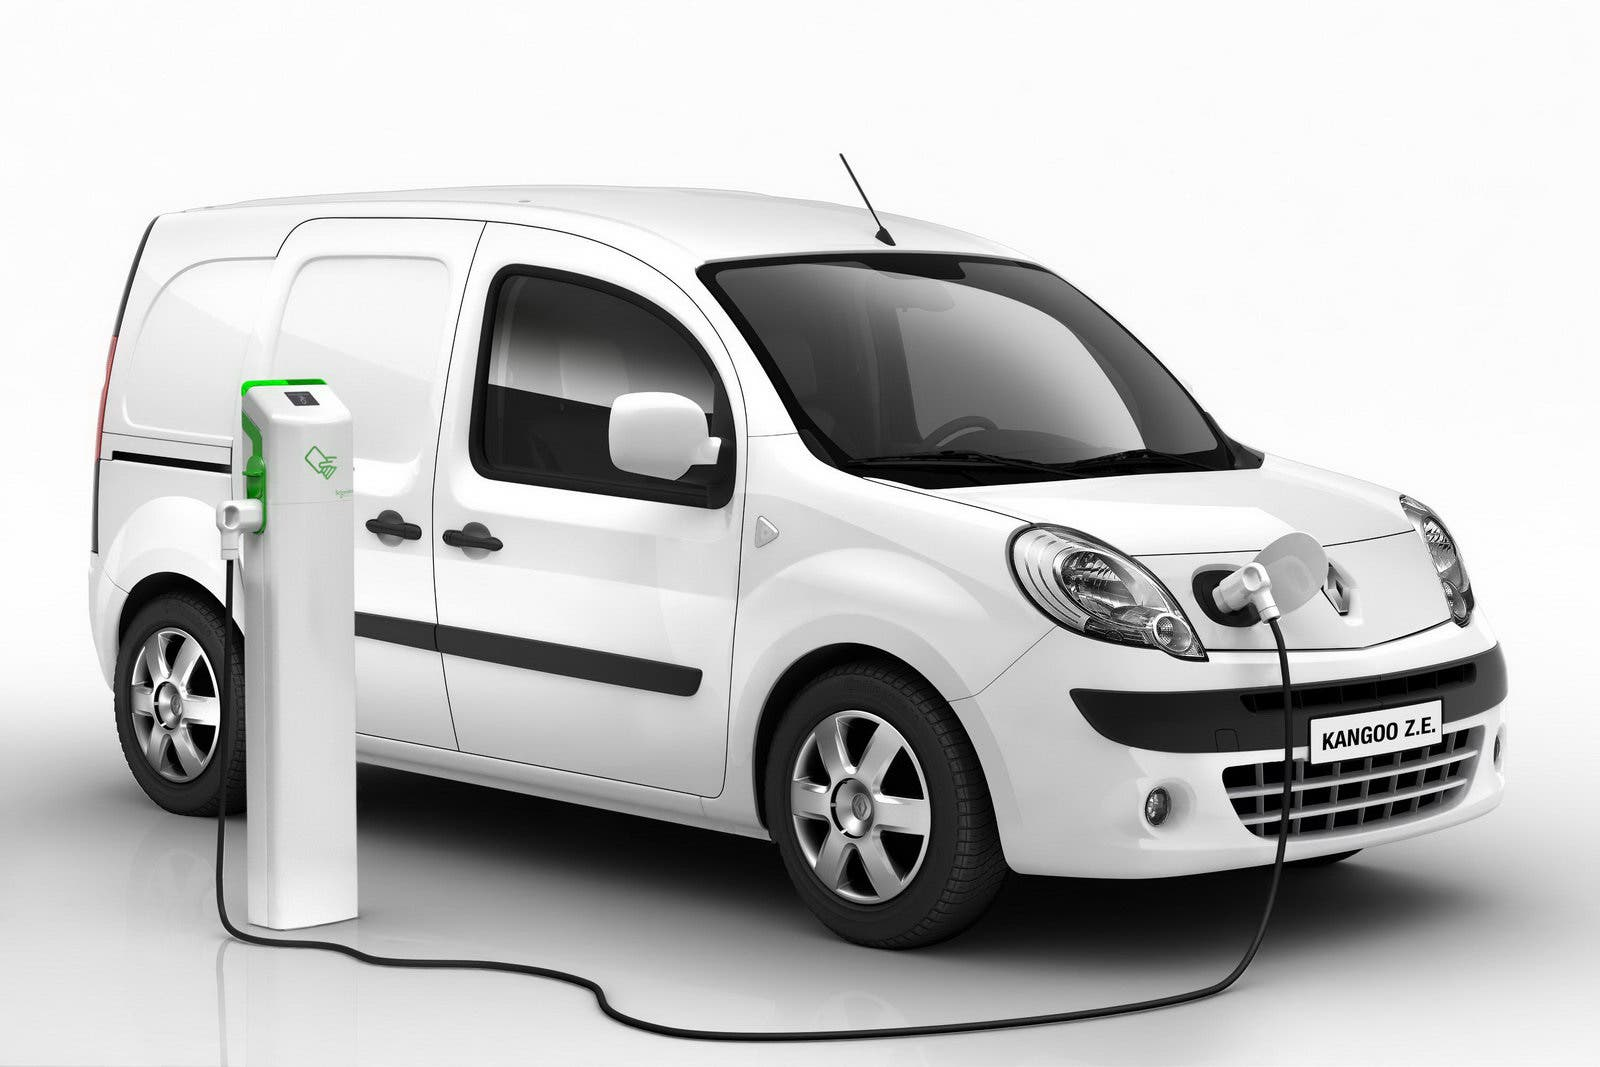 electric renault kangoo ze van getting big boost to range to 120 real world miles cleantechnica. Black Bedroom Furniture Sets. Home Design Ideas